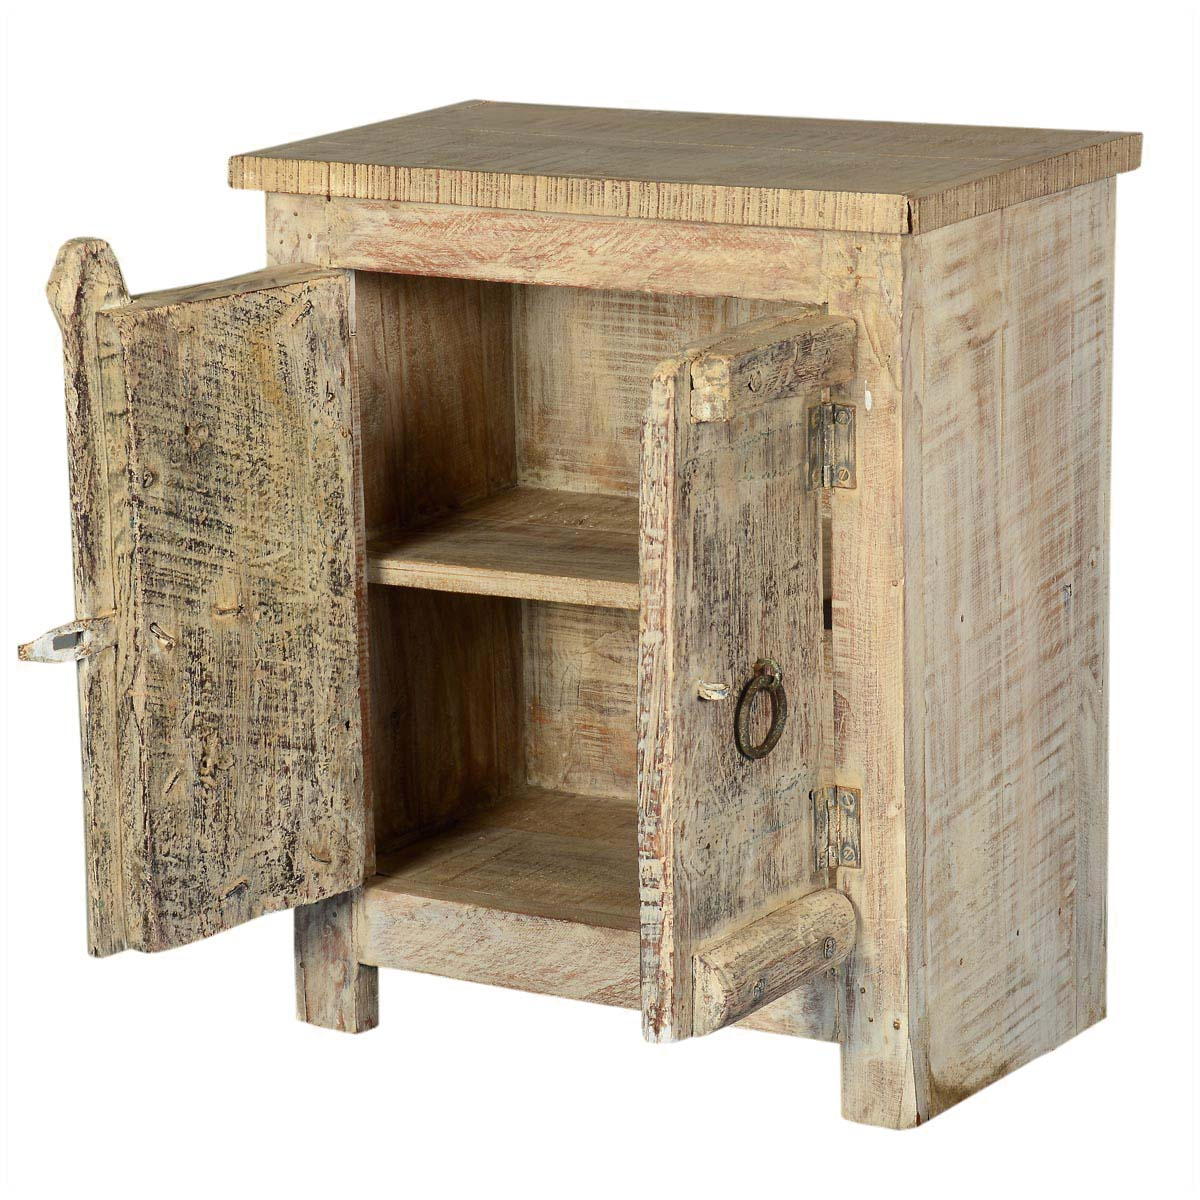 amish door old wood small rustic accent end table hallway with shelves wicker outdoor furniture bunnings gold home accessories blue bedside lamp lucite round dining nautical